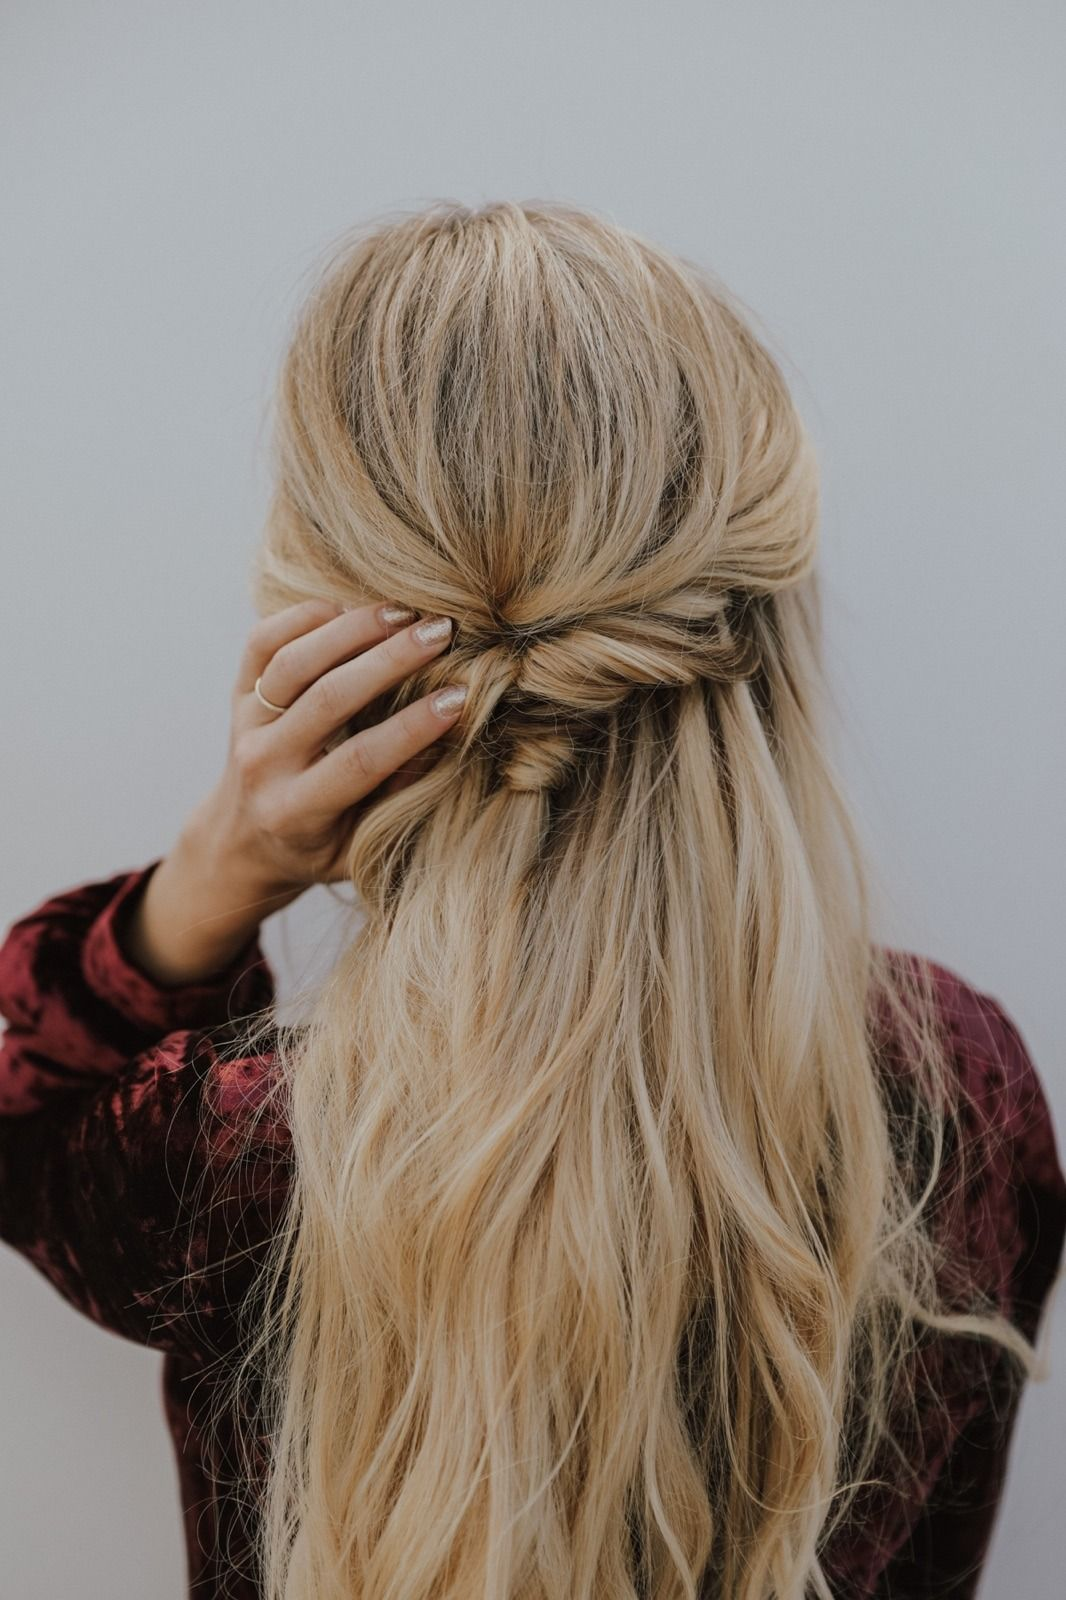 Pin by ms christa on h a i r pinterest hair hair styles and